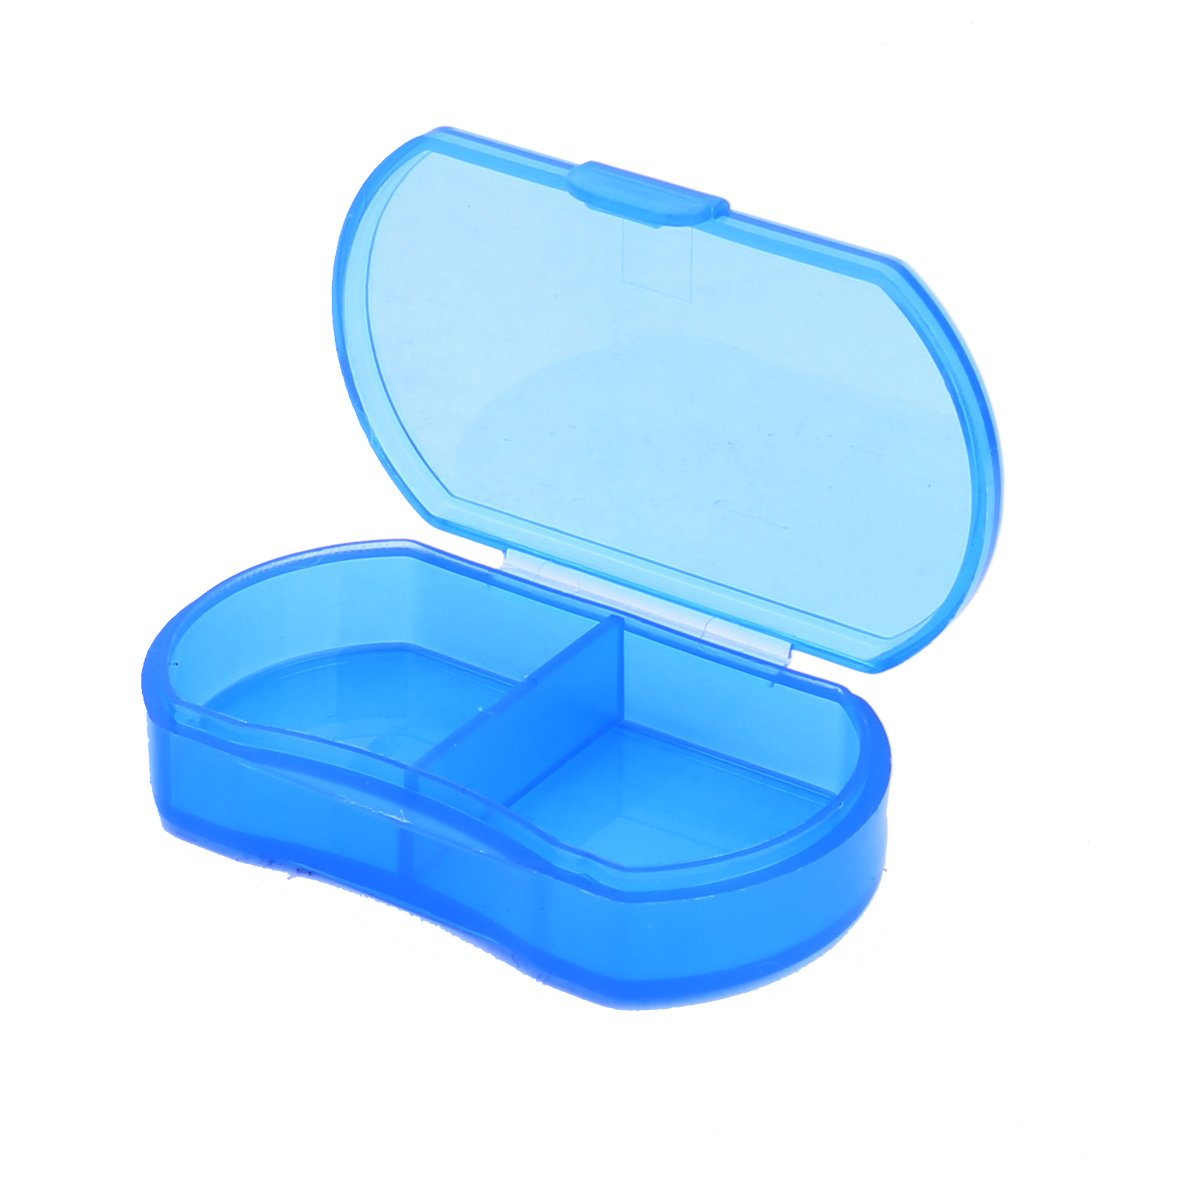 Aenllosi Hard Case for Emay Handheld ECG/EKG Monitor with Pill Organizer by by Aenllosi (Image #6)